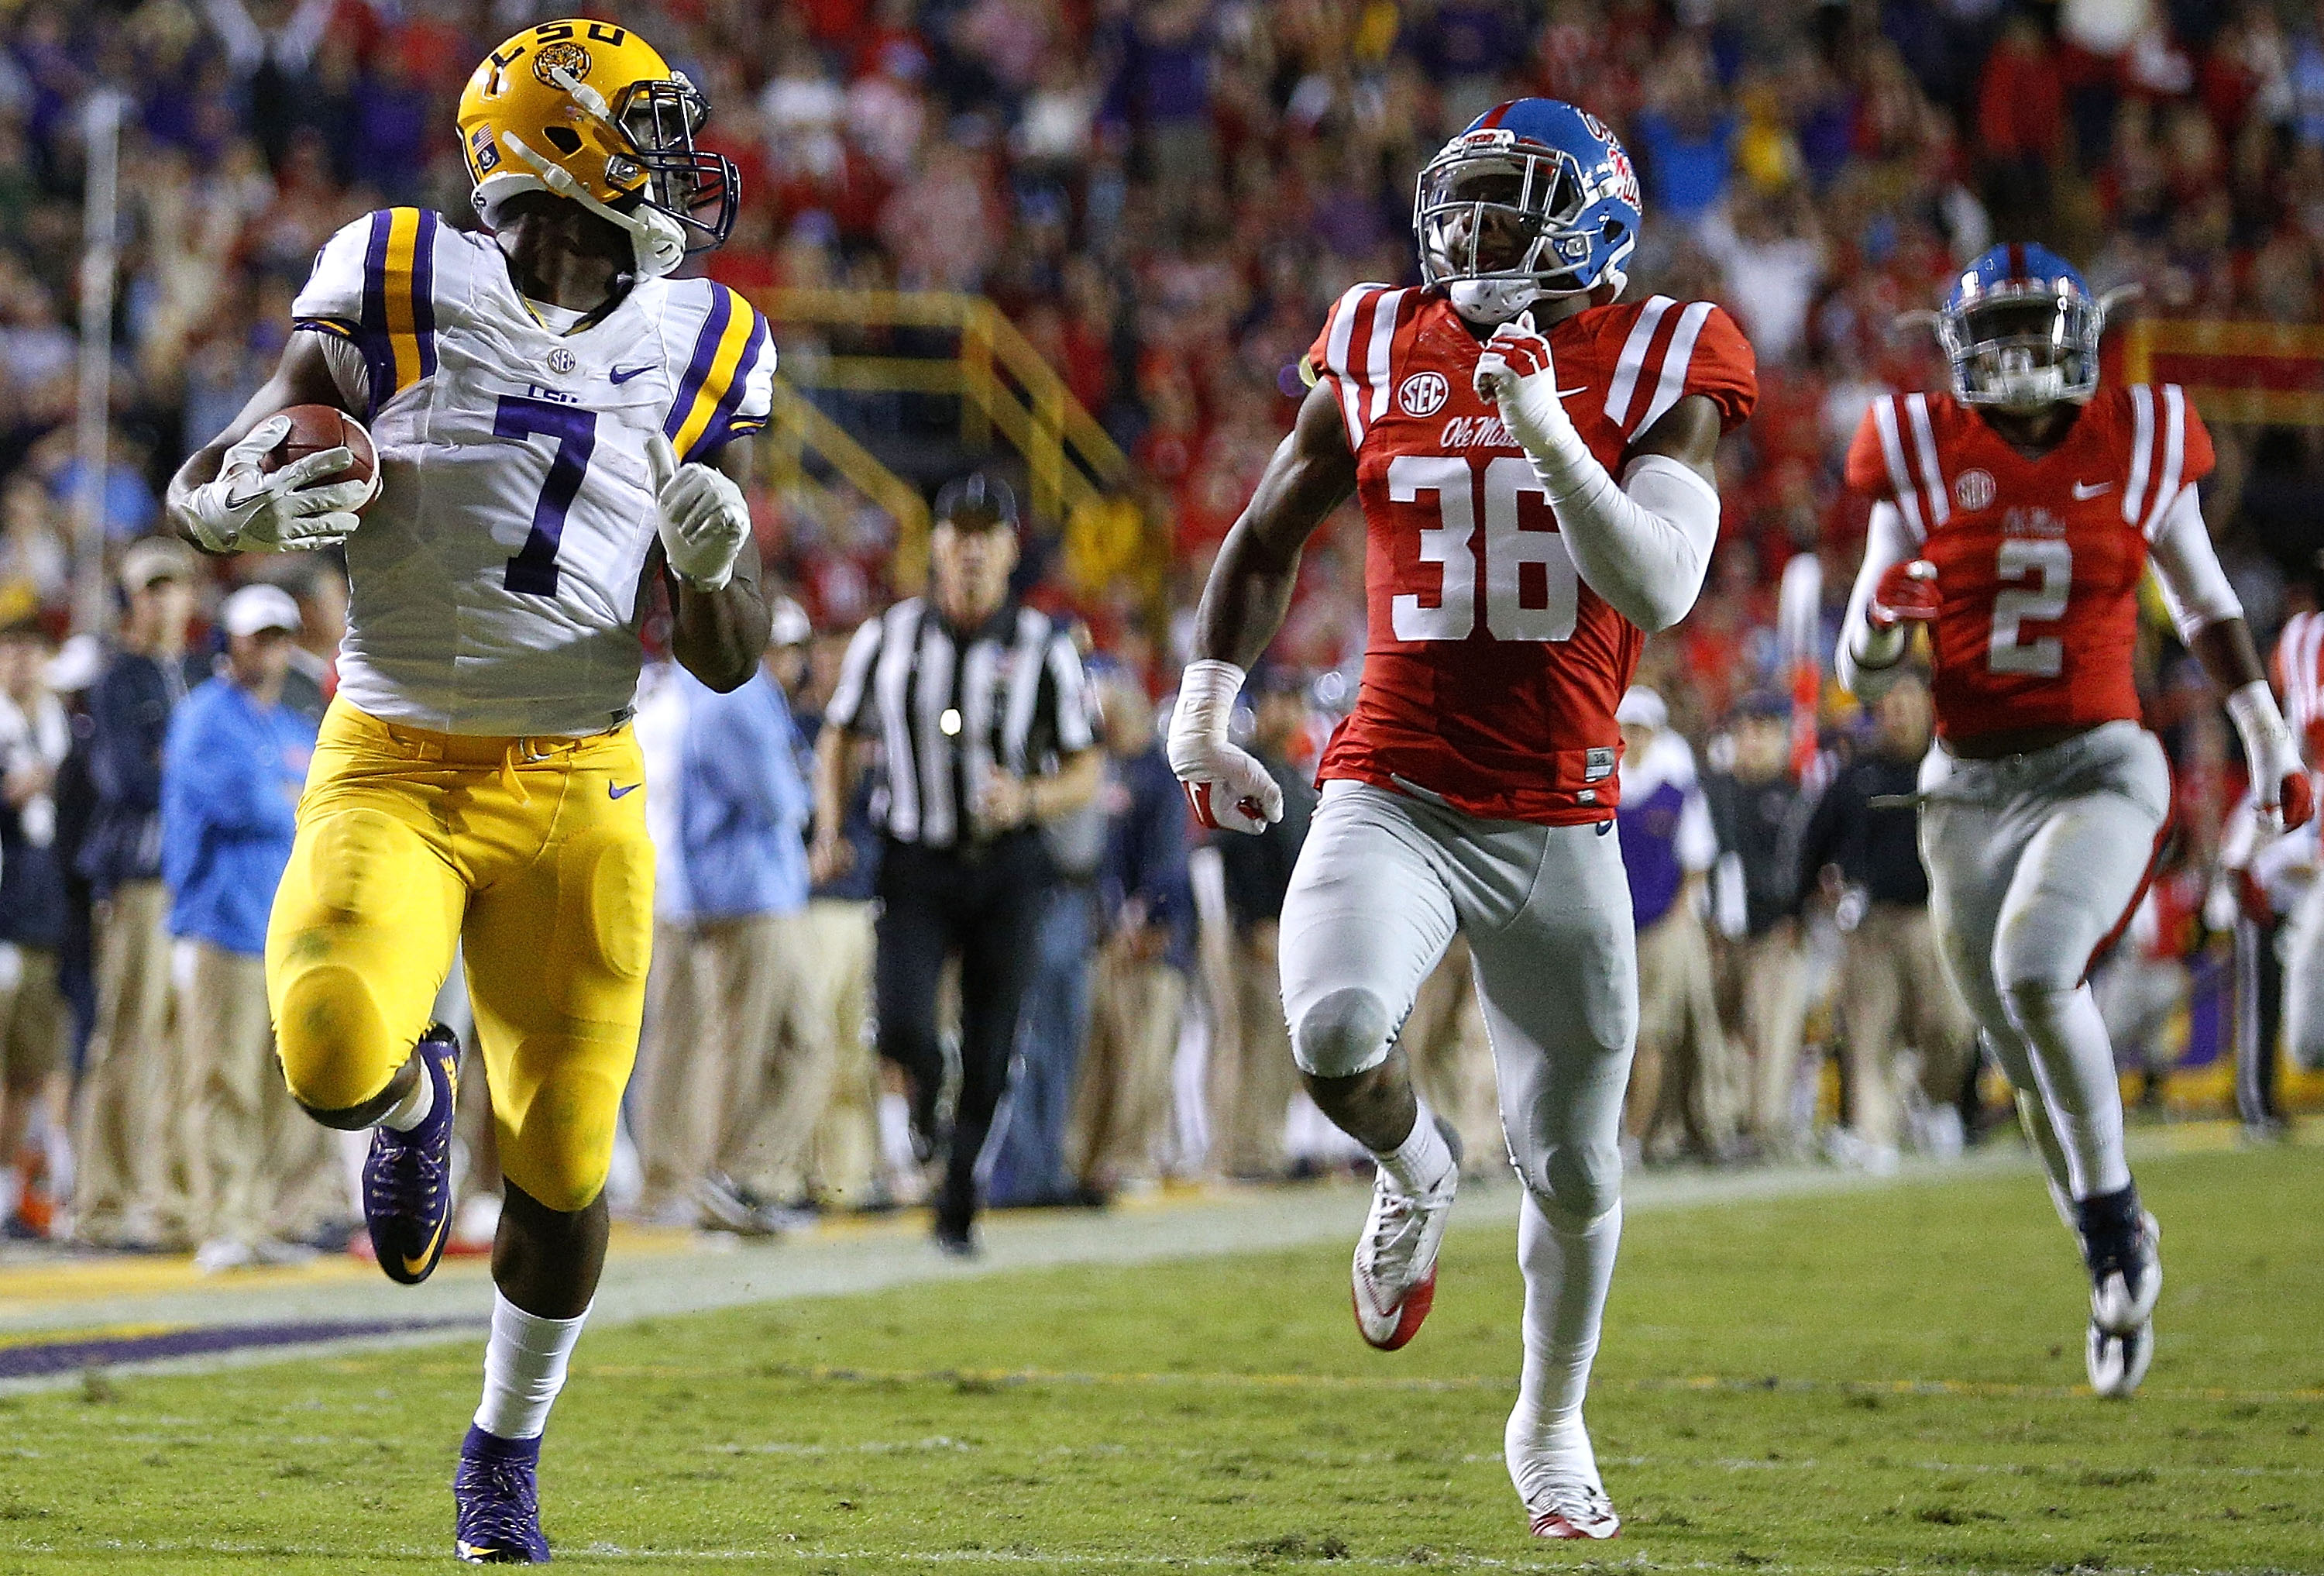 BATON ROUGE, LA - OCTOBER 22:  Leonard Fournette #7 of the LSU Tigers runs past Zedrick Woods #36 of the Mississippi Rebels for a 76-yard touchdown during the first half of a game at Tiger Stadium on October 22, 2016 in Baton Rouge, Louisiana.  (Photo by Jonathan Bachman/Getty Images)